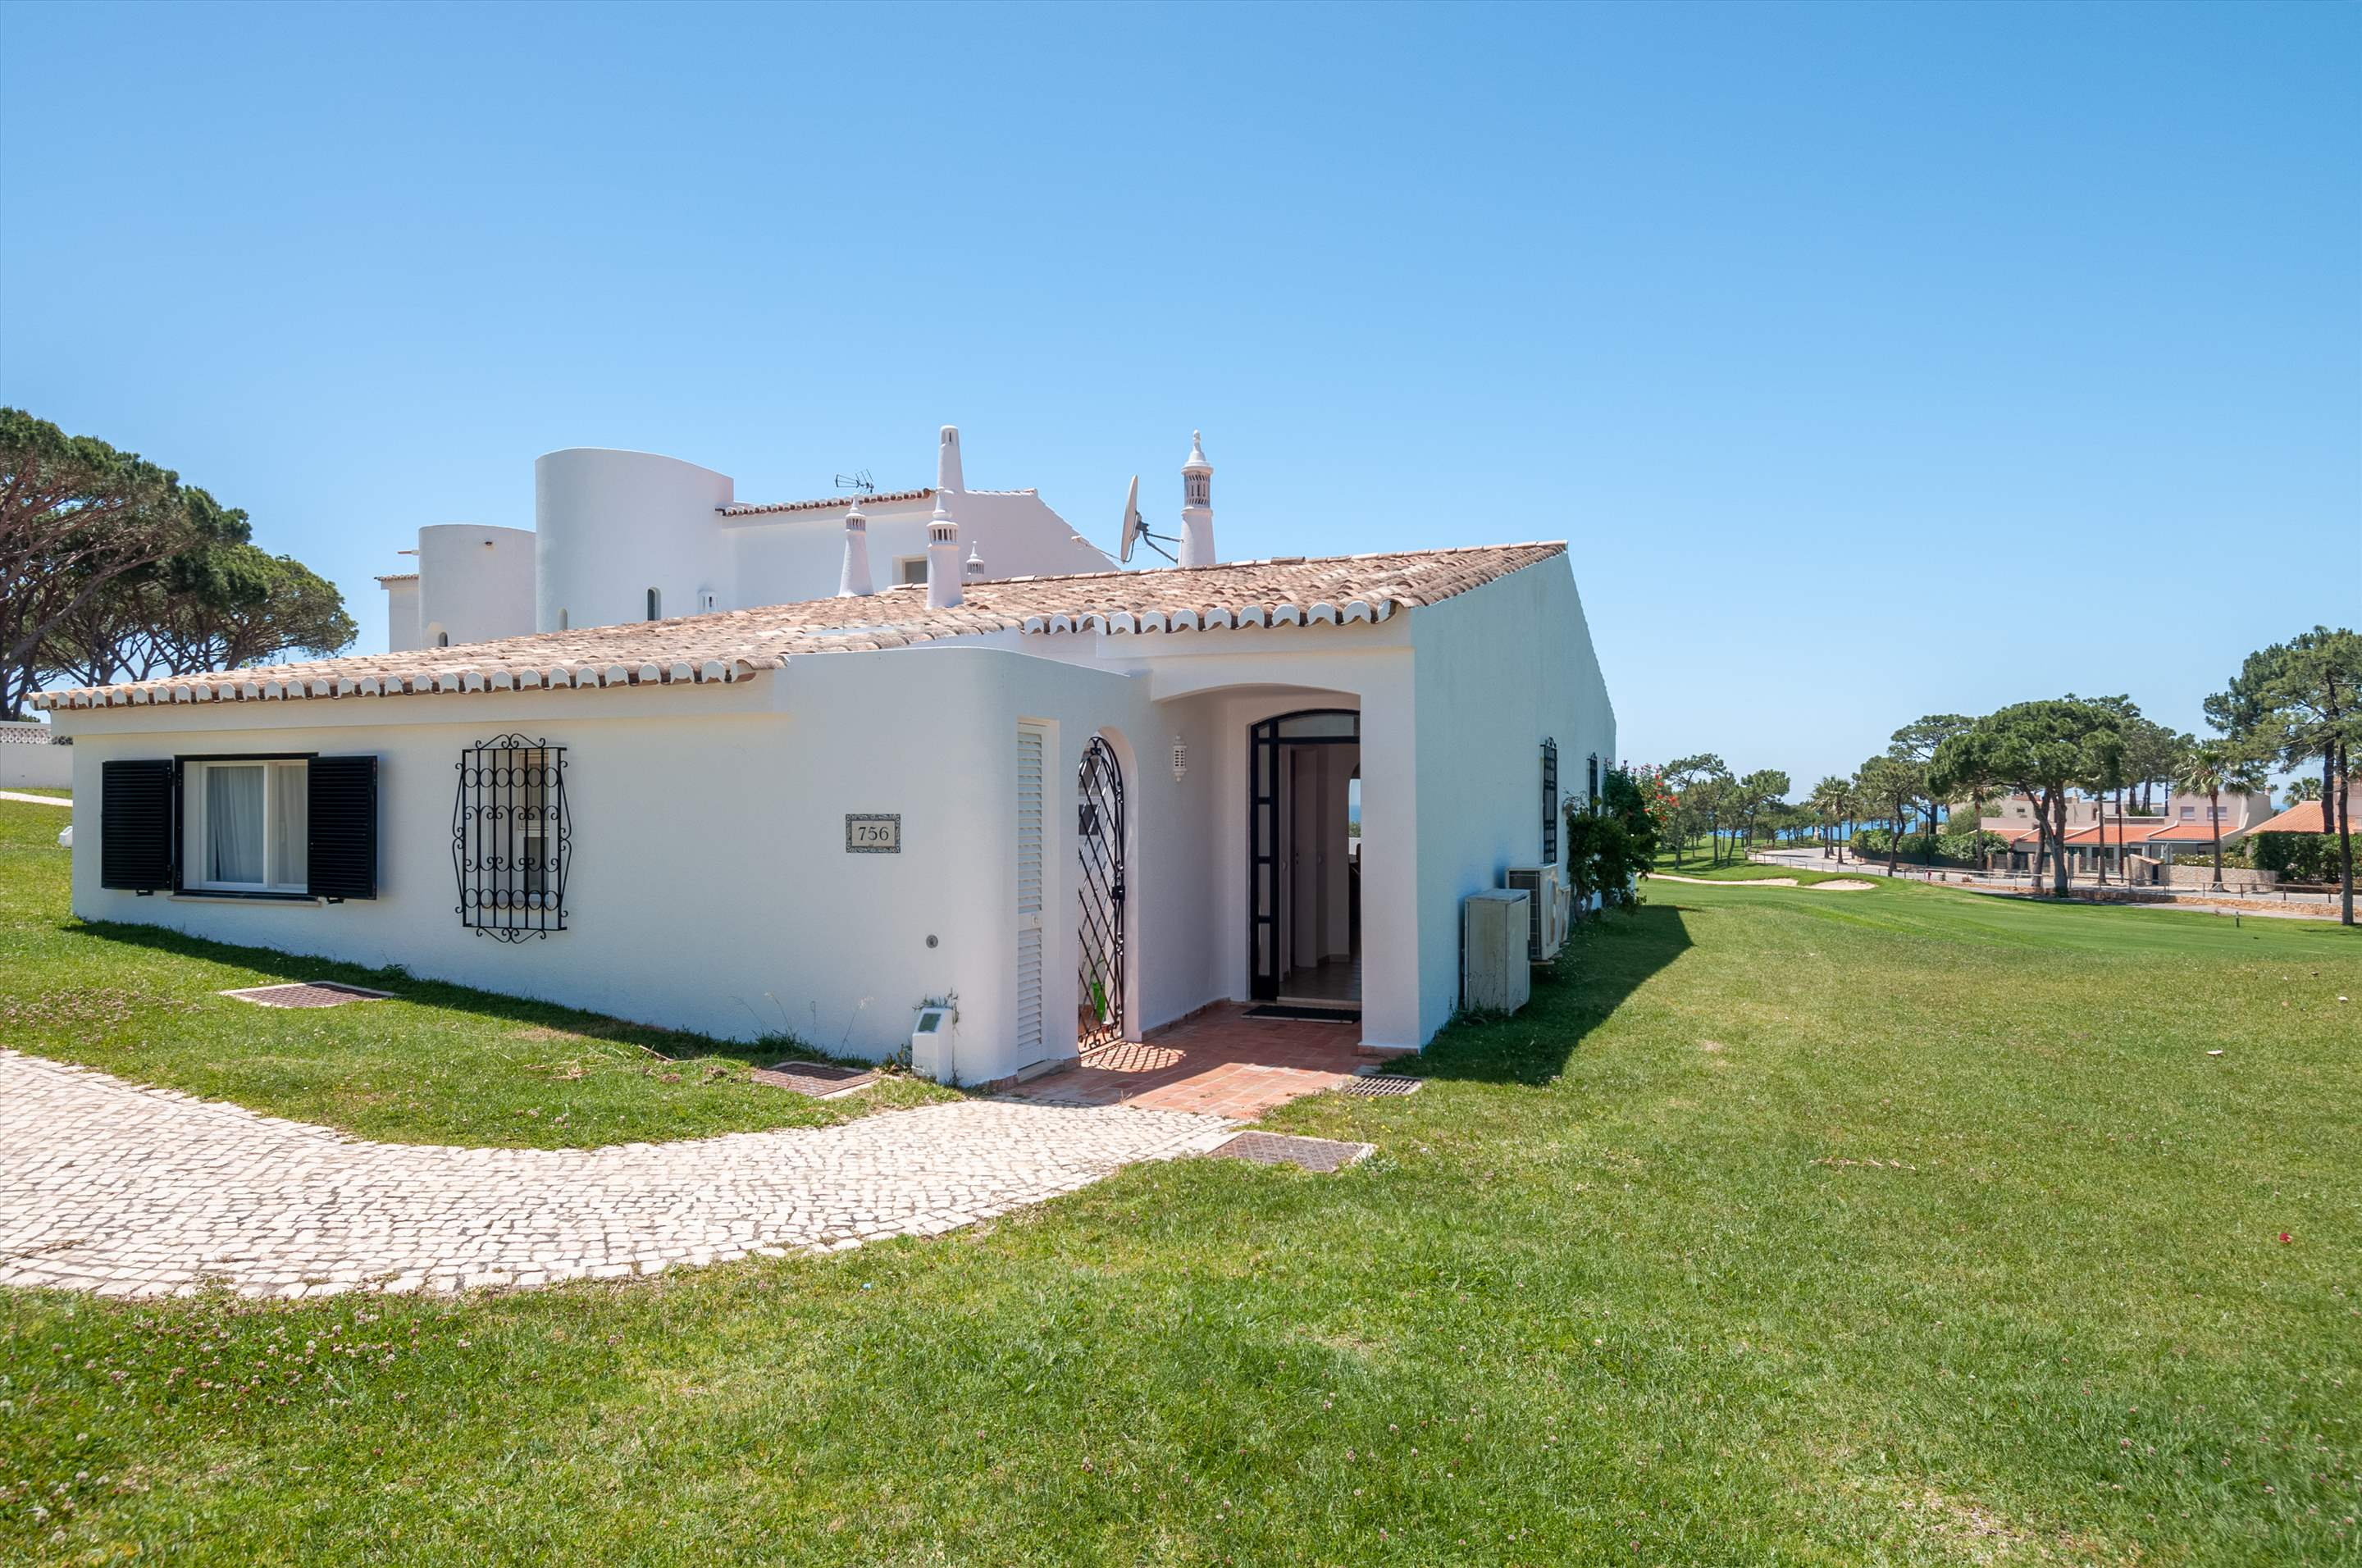 Villa Mimosa 6, 3 bedroom villa in Vale do Lobo, Algarve